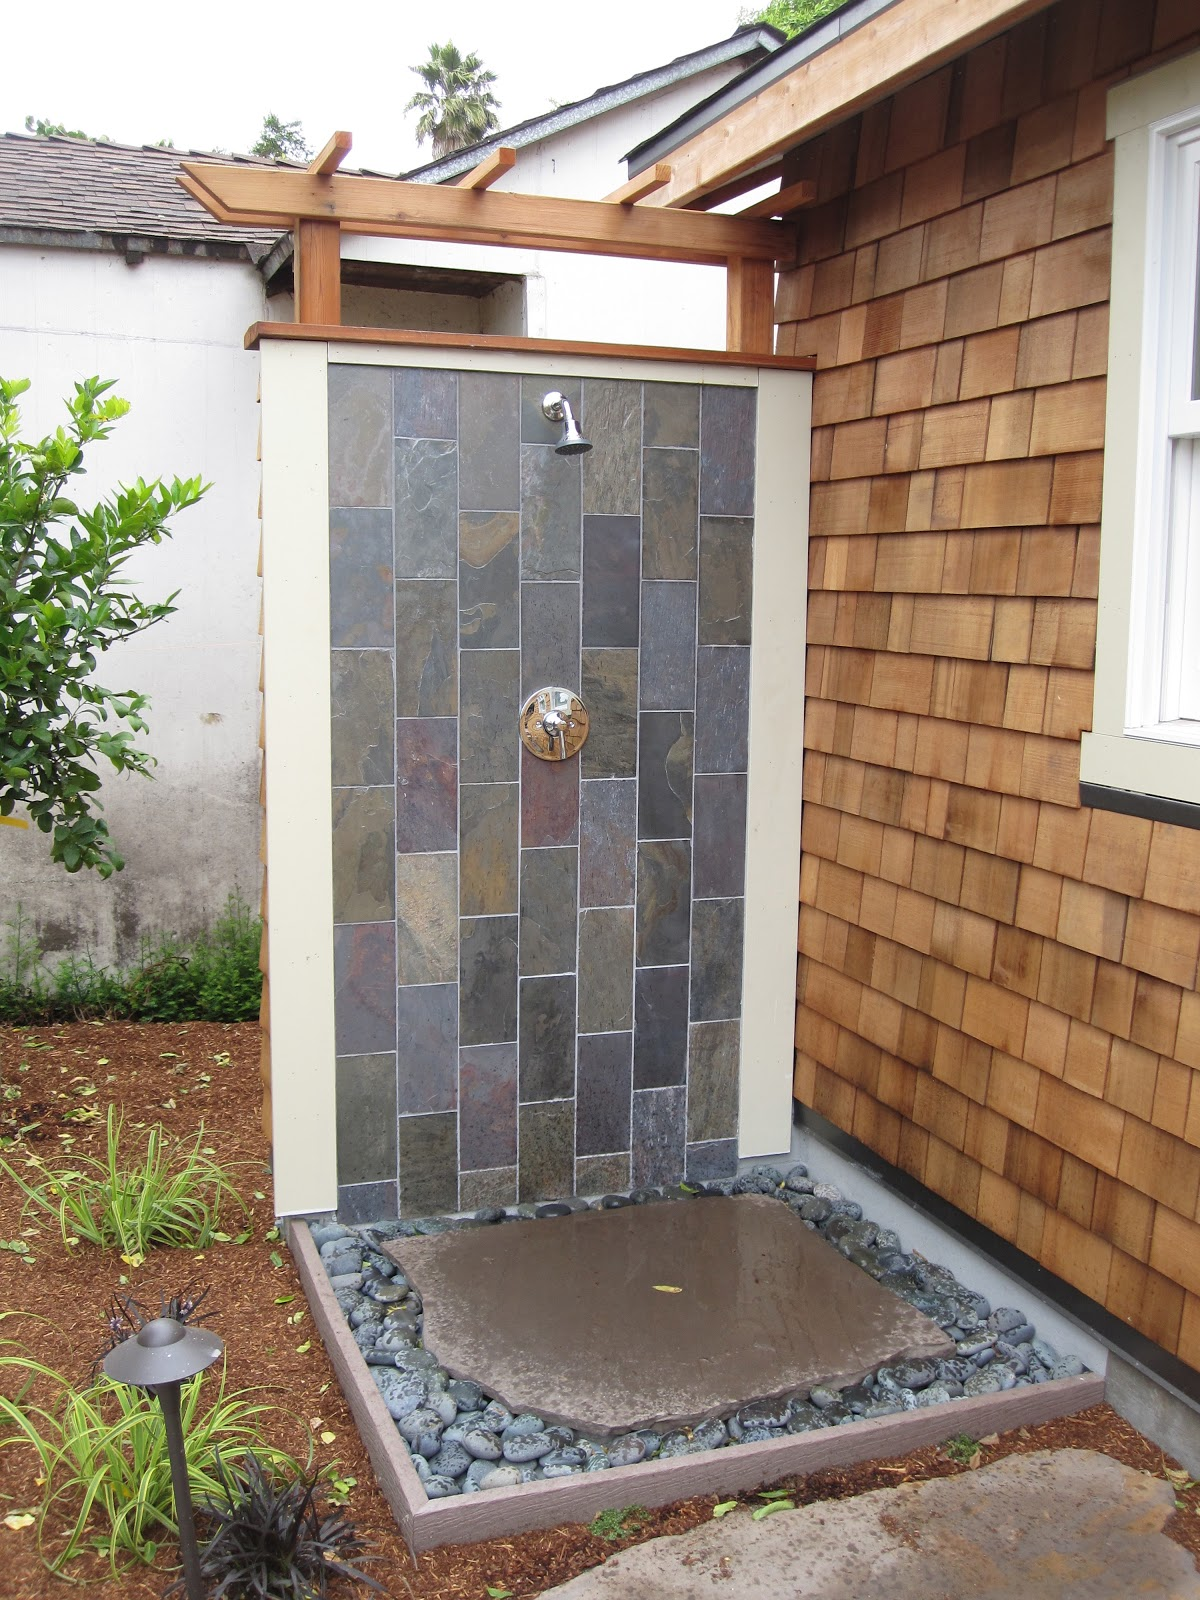 ... Mortared A Flagstone Patio, Built A Lattice/trellis Along The Side Of  The Garage, Installed A Fountain And Installed Irrigation And Plants.